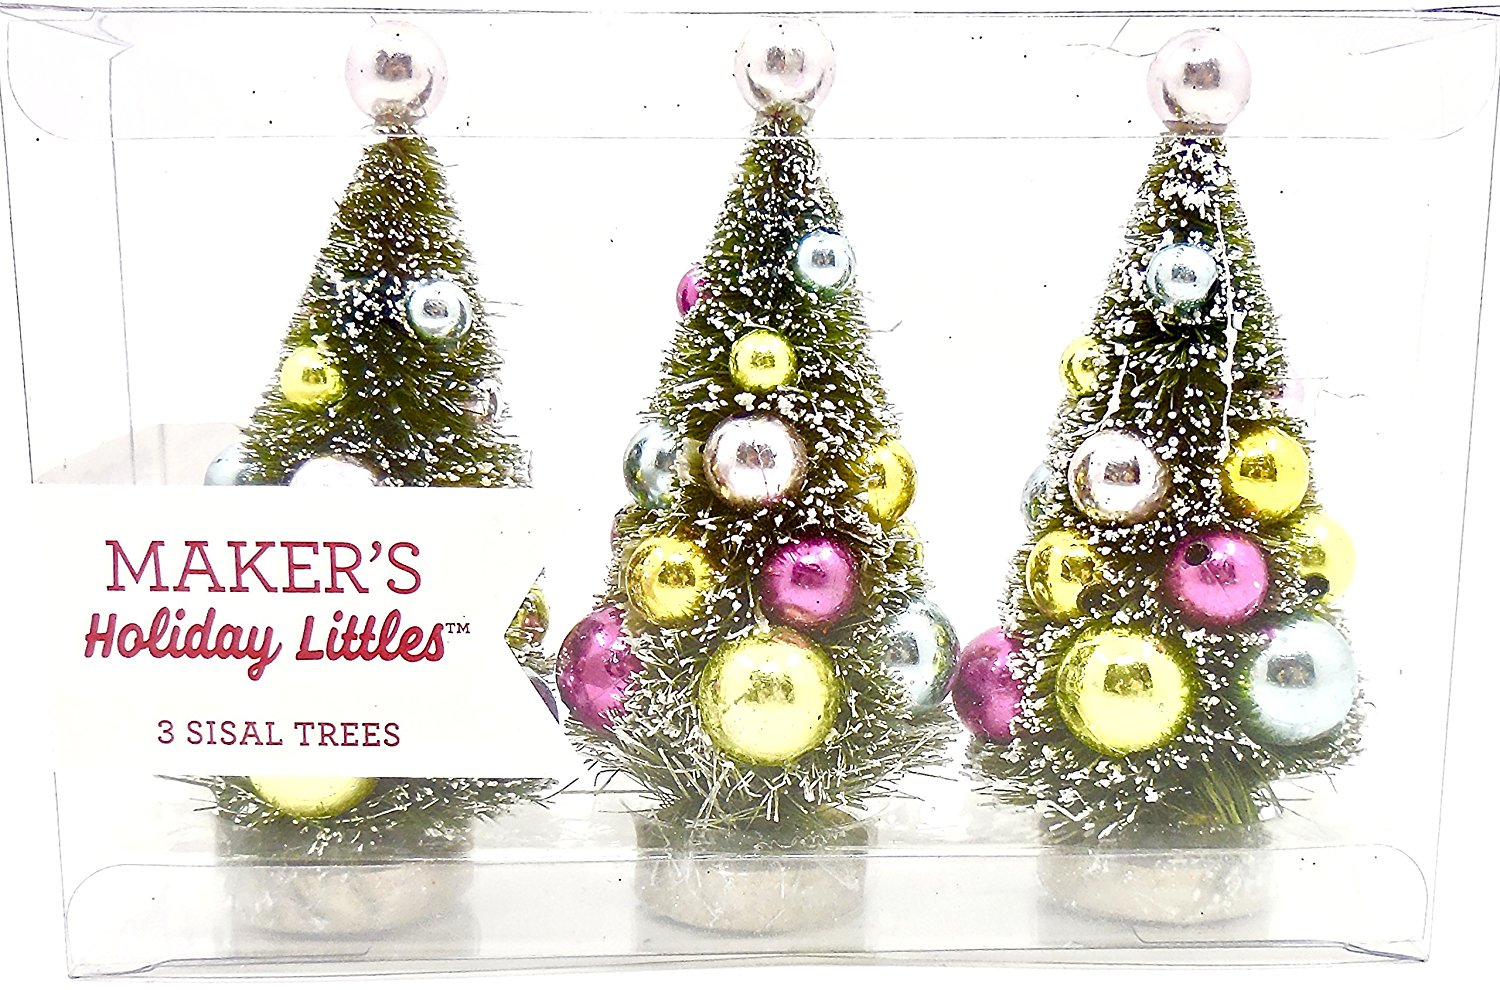 Maker's Holiday Littles Jo-ann's Miniature Christmas Trees,Bulb Decorated,3 Sisal Trees to 1 package